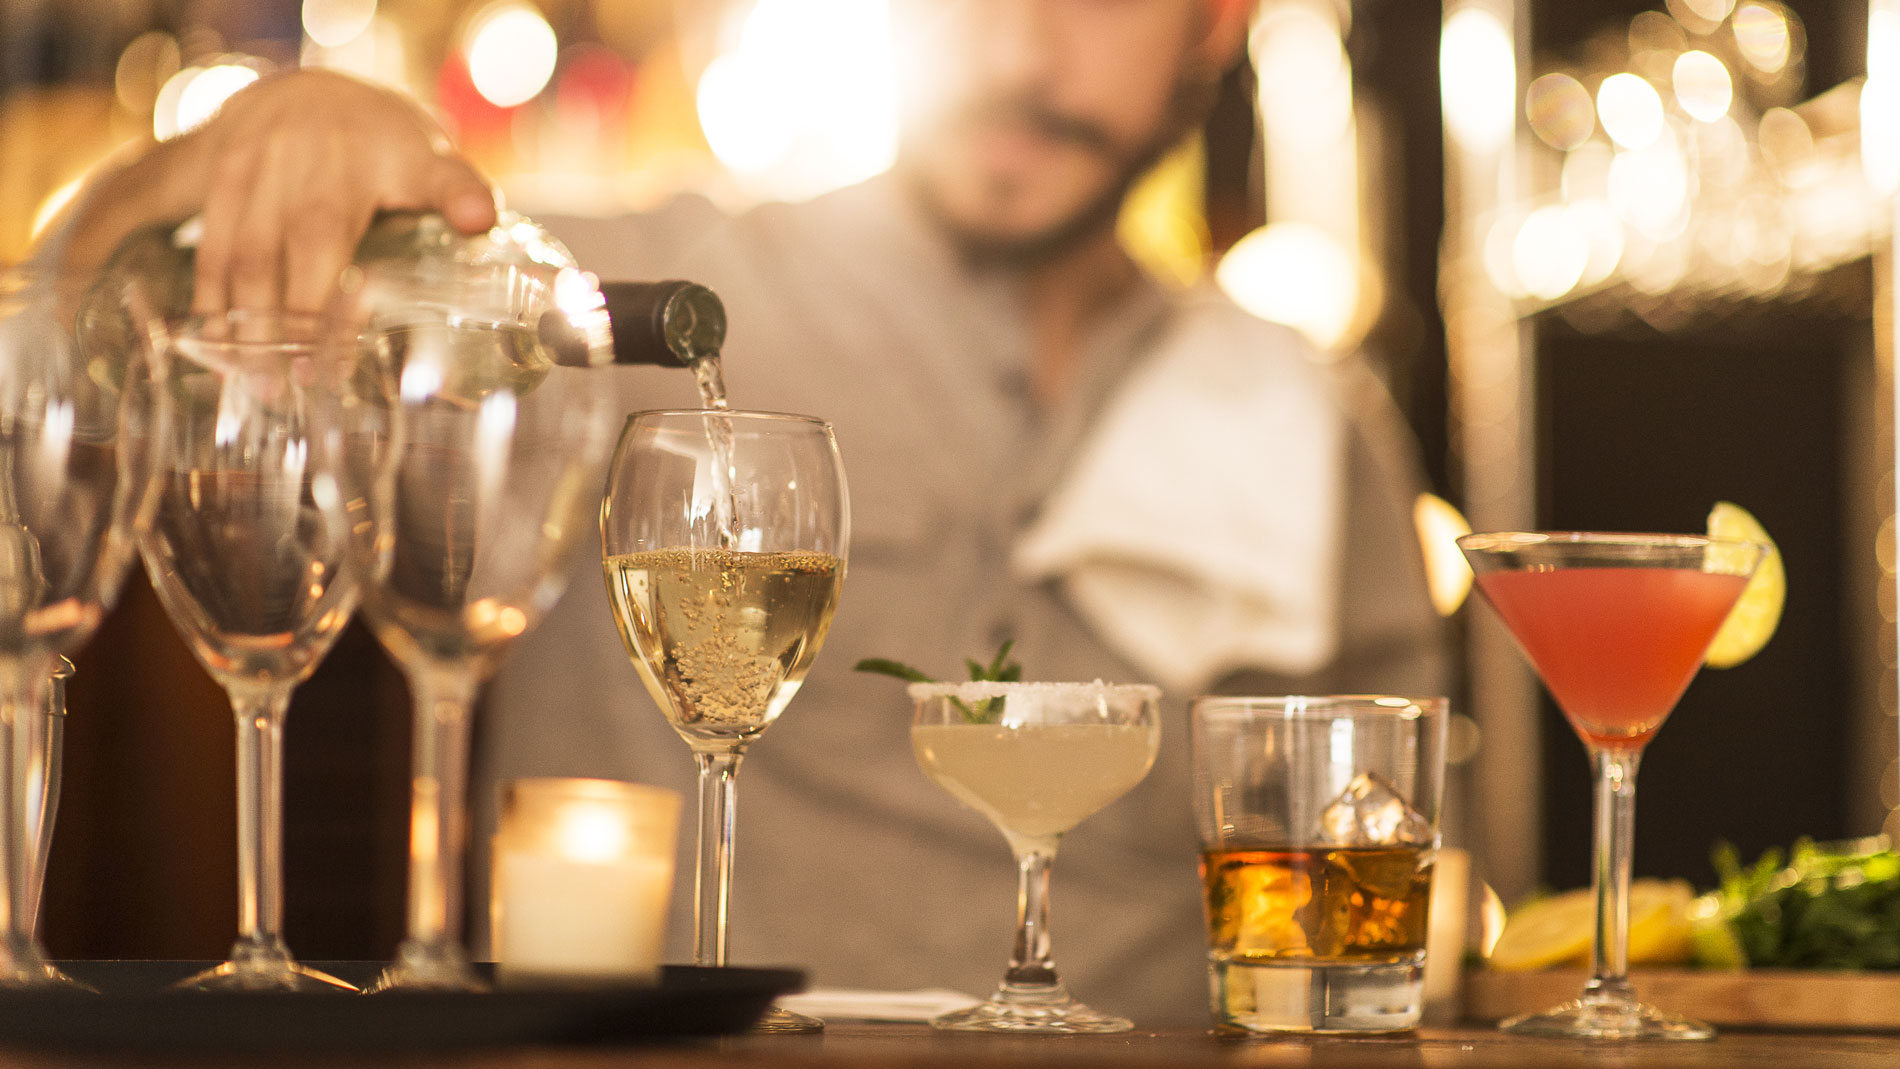 9 Things Bartenders Wish You Knew About Tipping